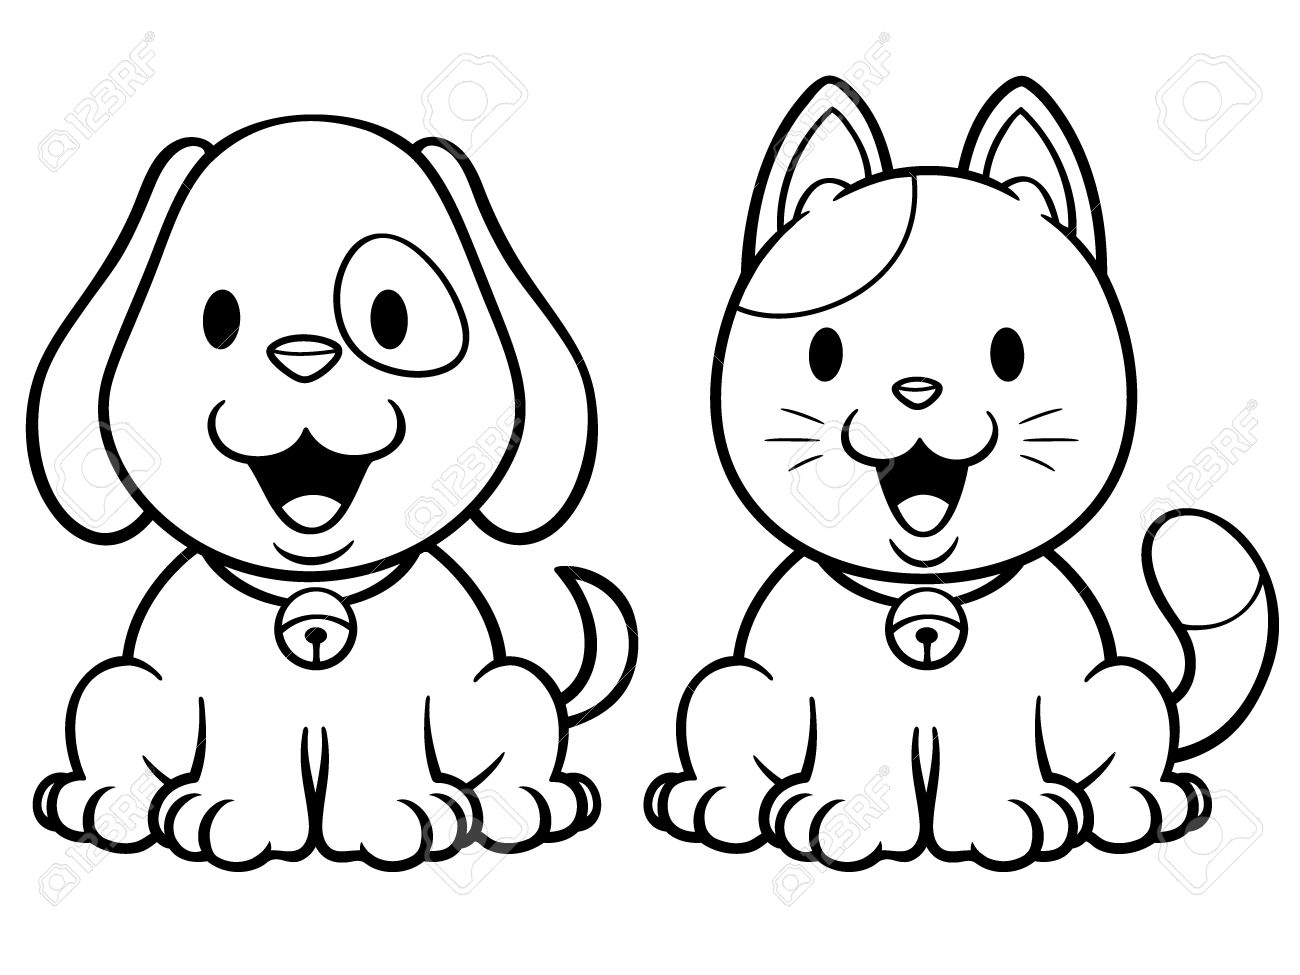 Cartoon Pictures Of Dogs And Cats | Free download on ...